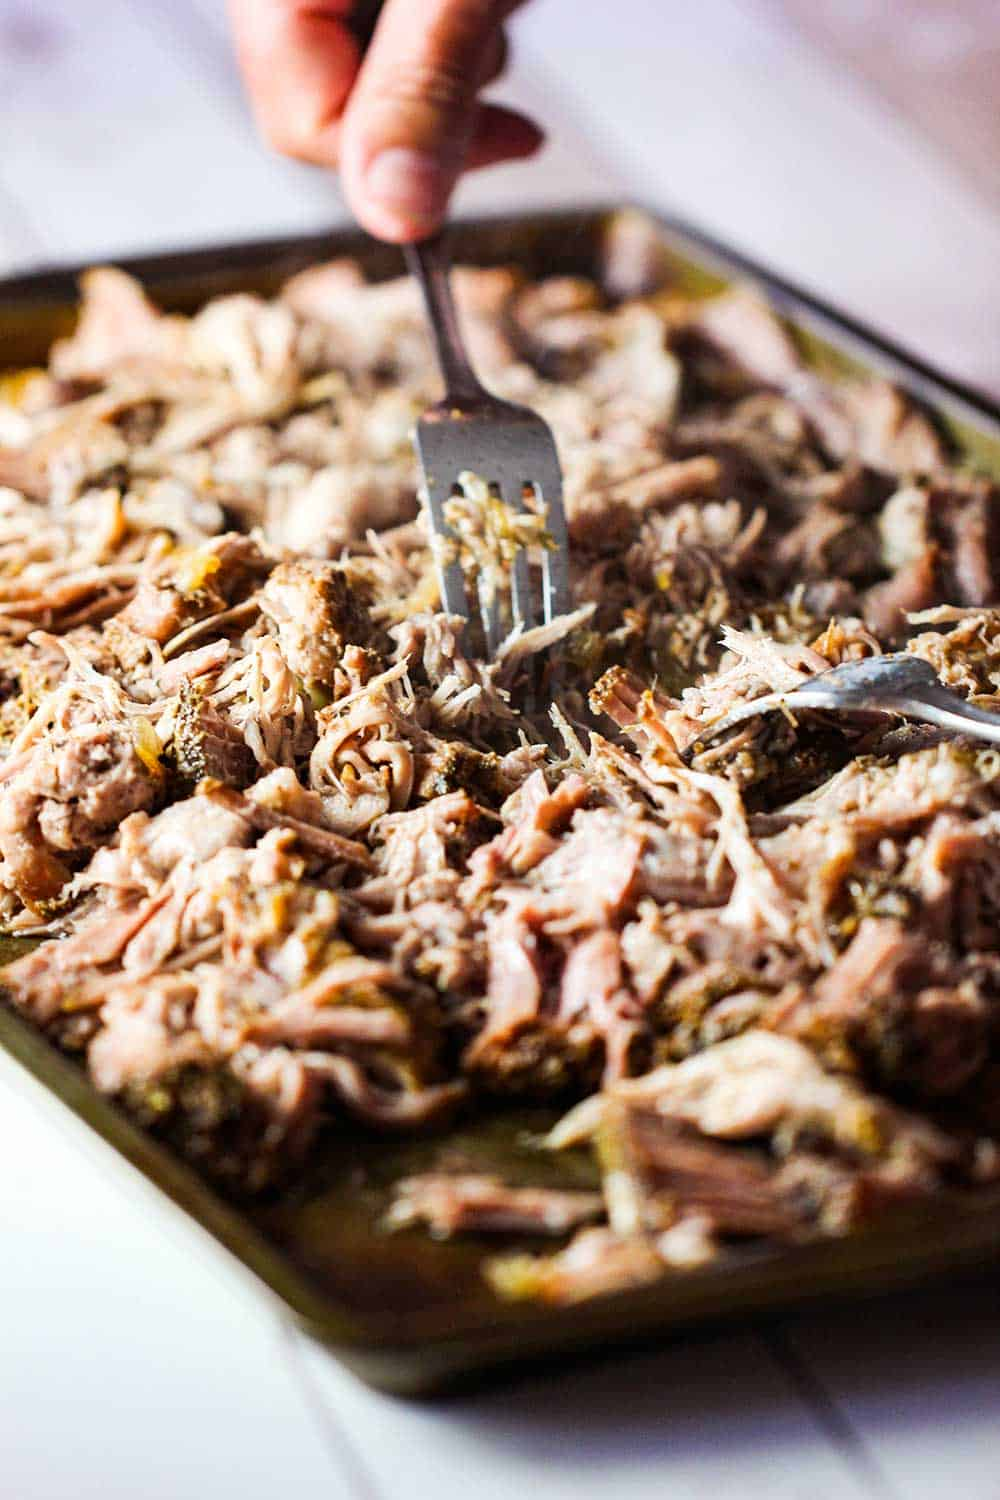 Use two forks to shred the cooked pork apart for carnitas tacos.